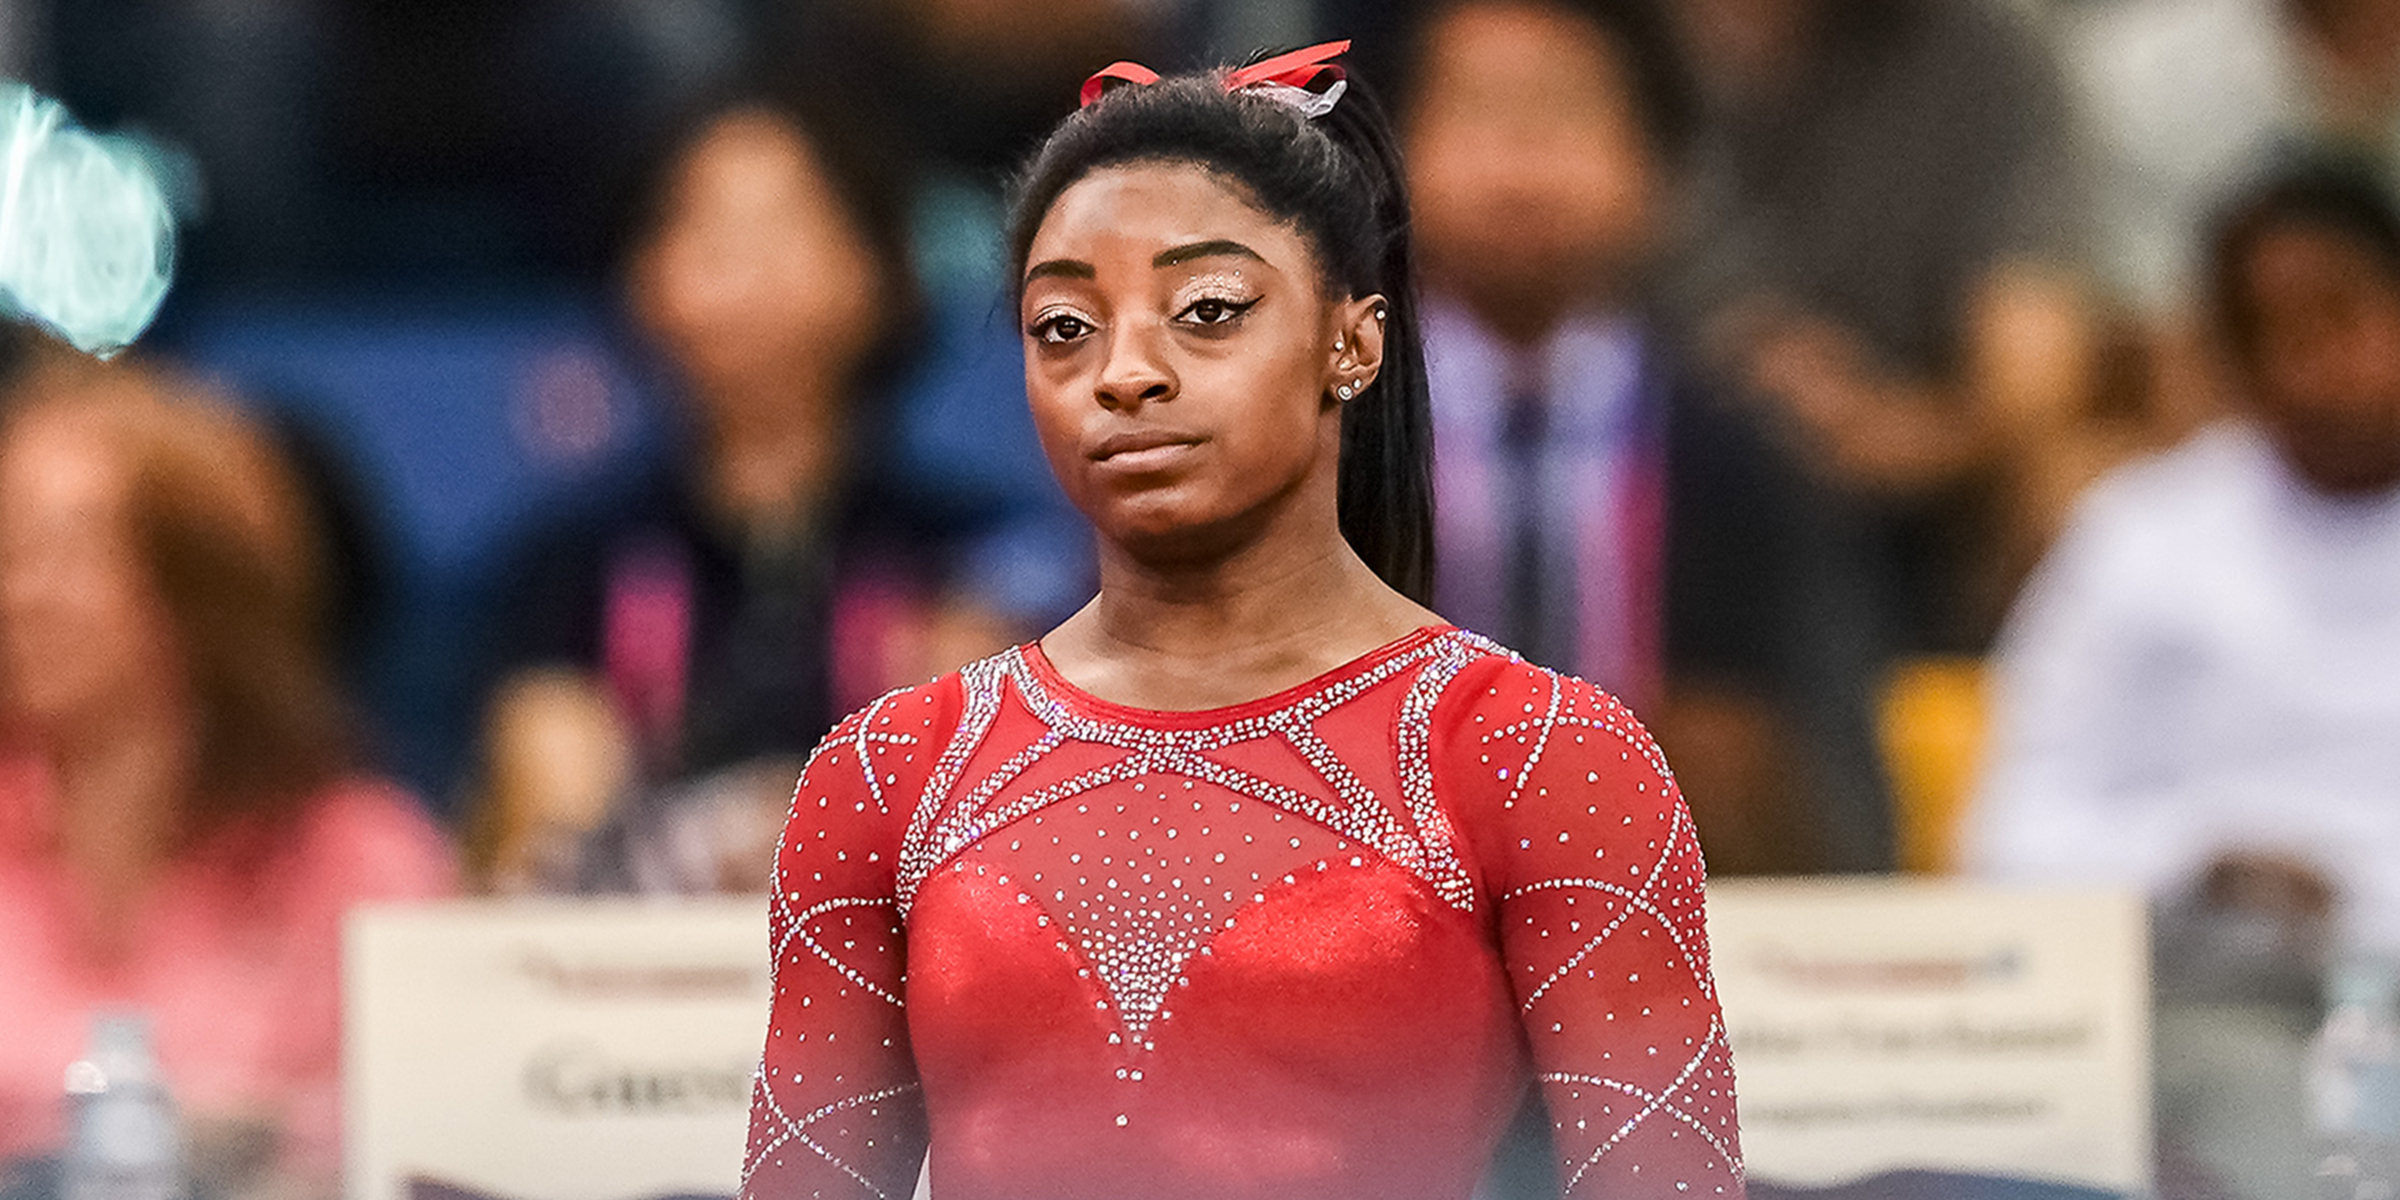 Simone Biles rips USA Gymnastics for Larry Nassar case: 'You couldn't protect us'